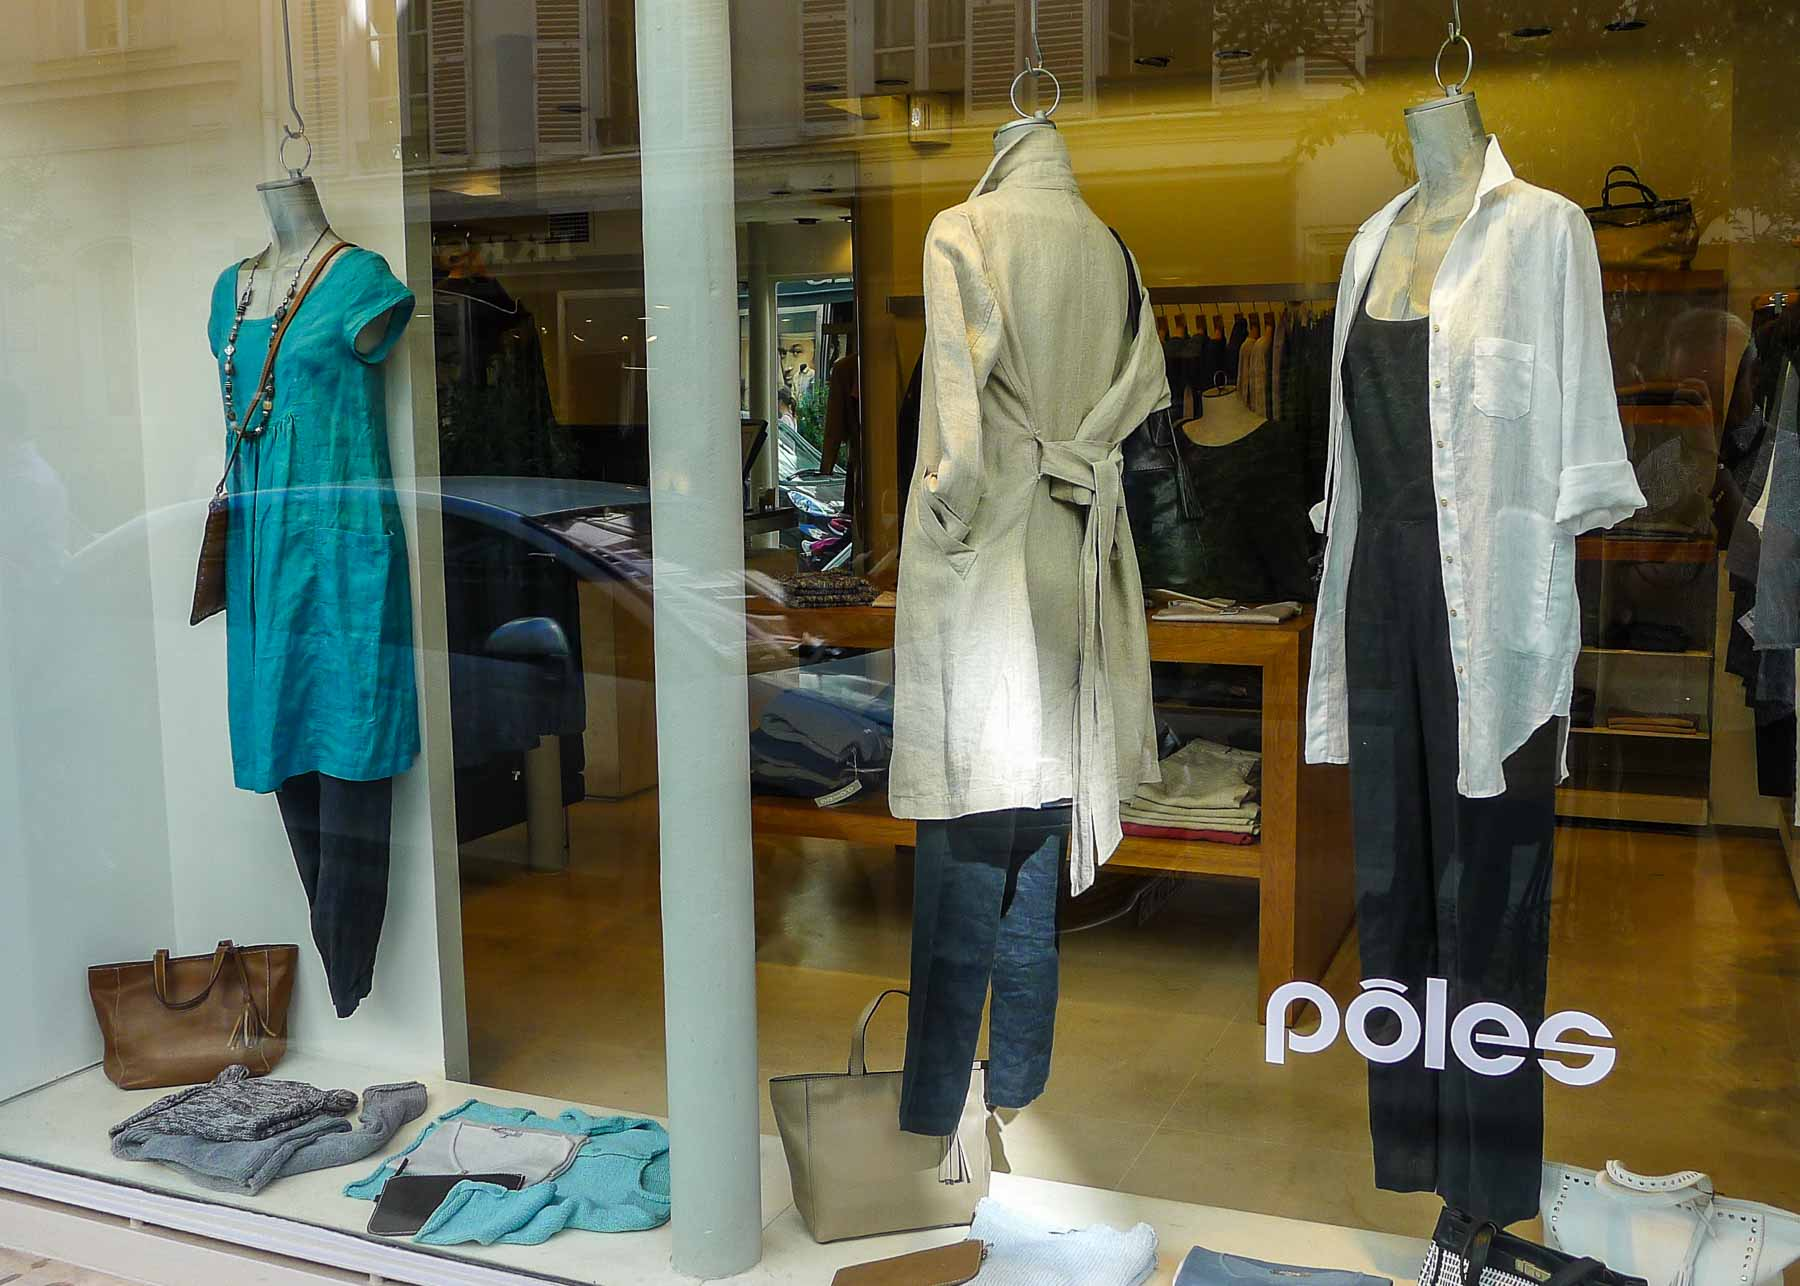 Windows of a women's clothing store in Paris.